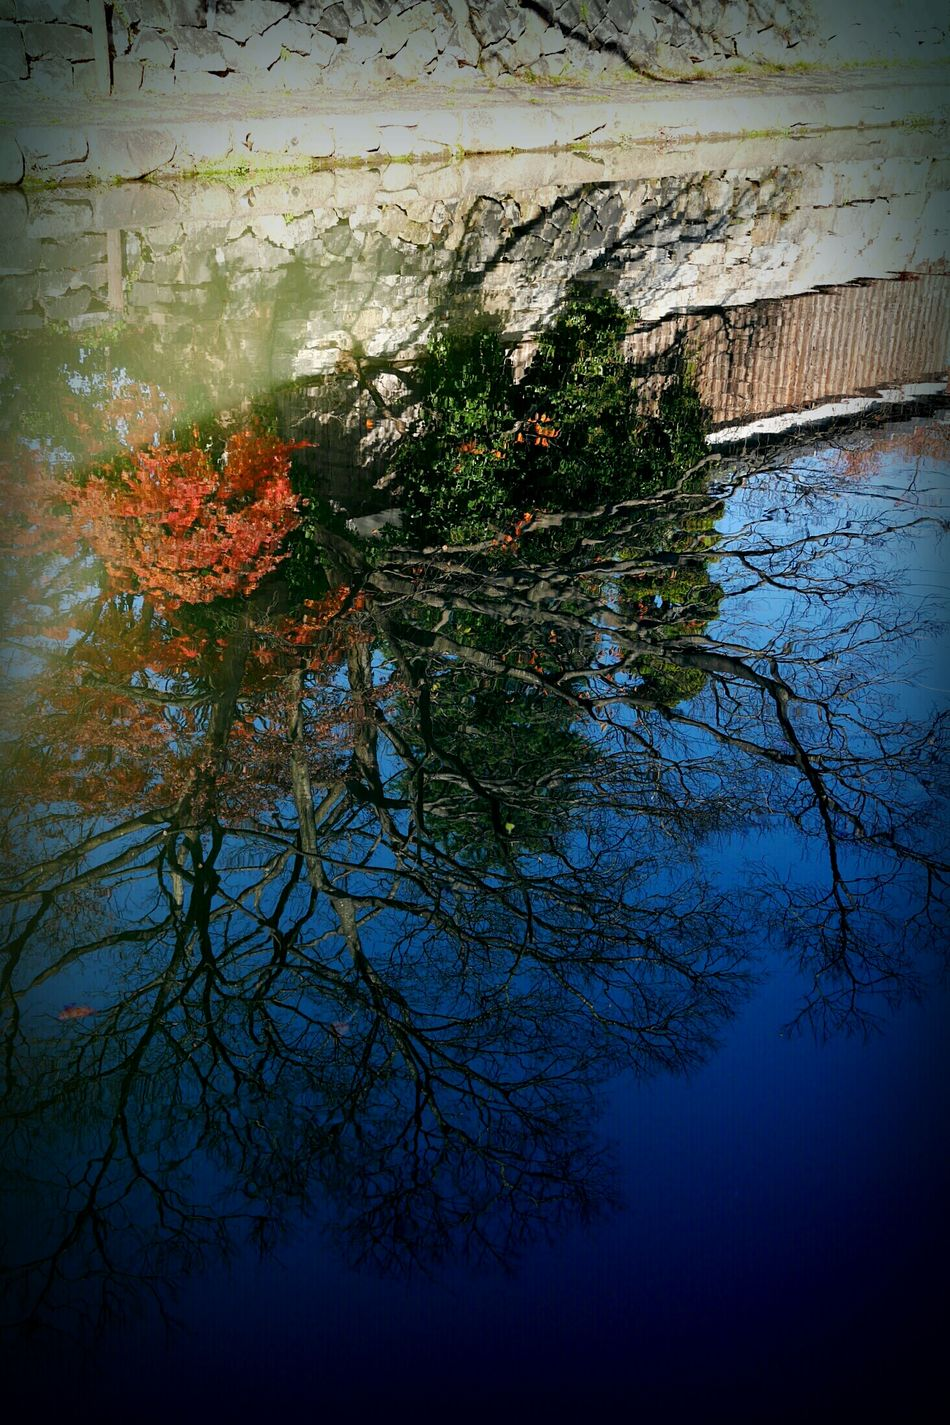 Waterway Ōmihachiman Shiga,Japan Winter Water Reflection Calm Tree Sky